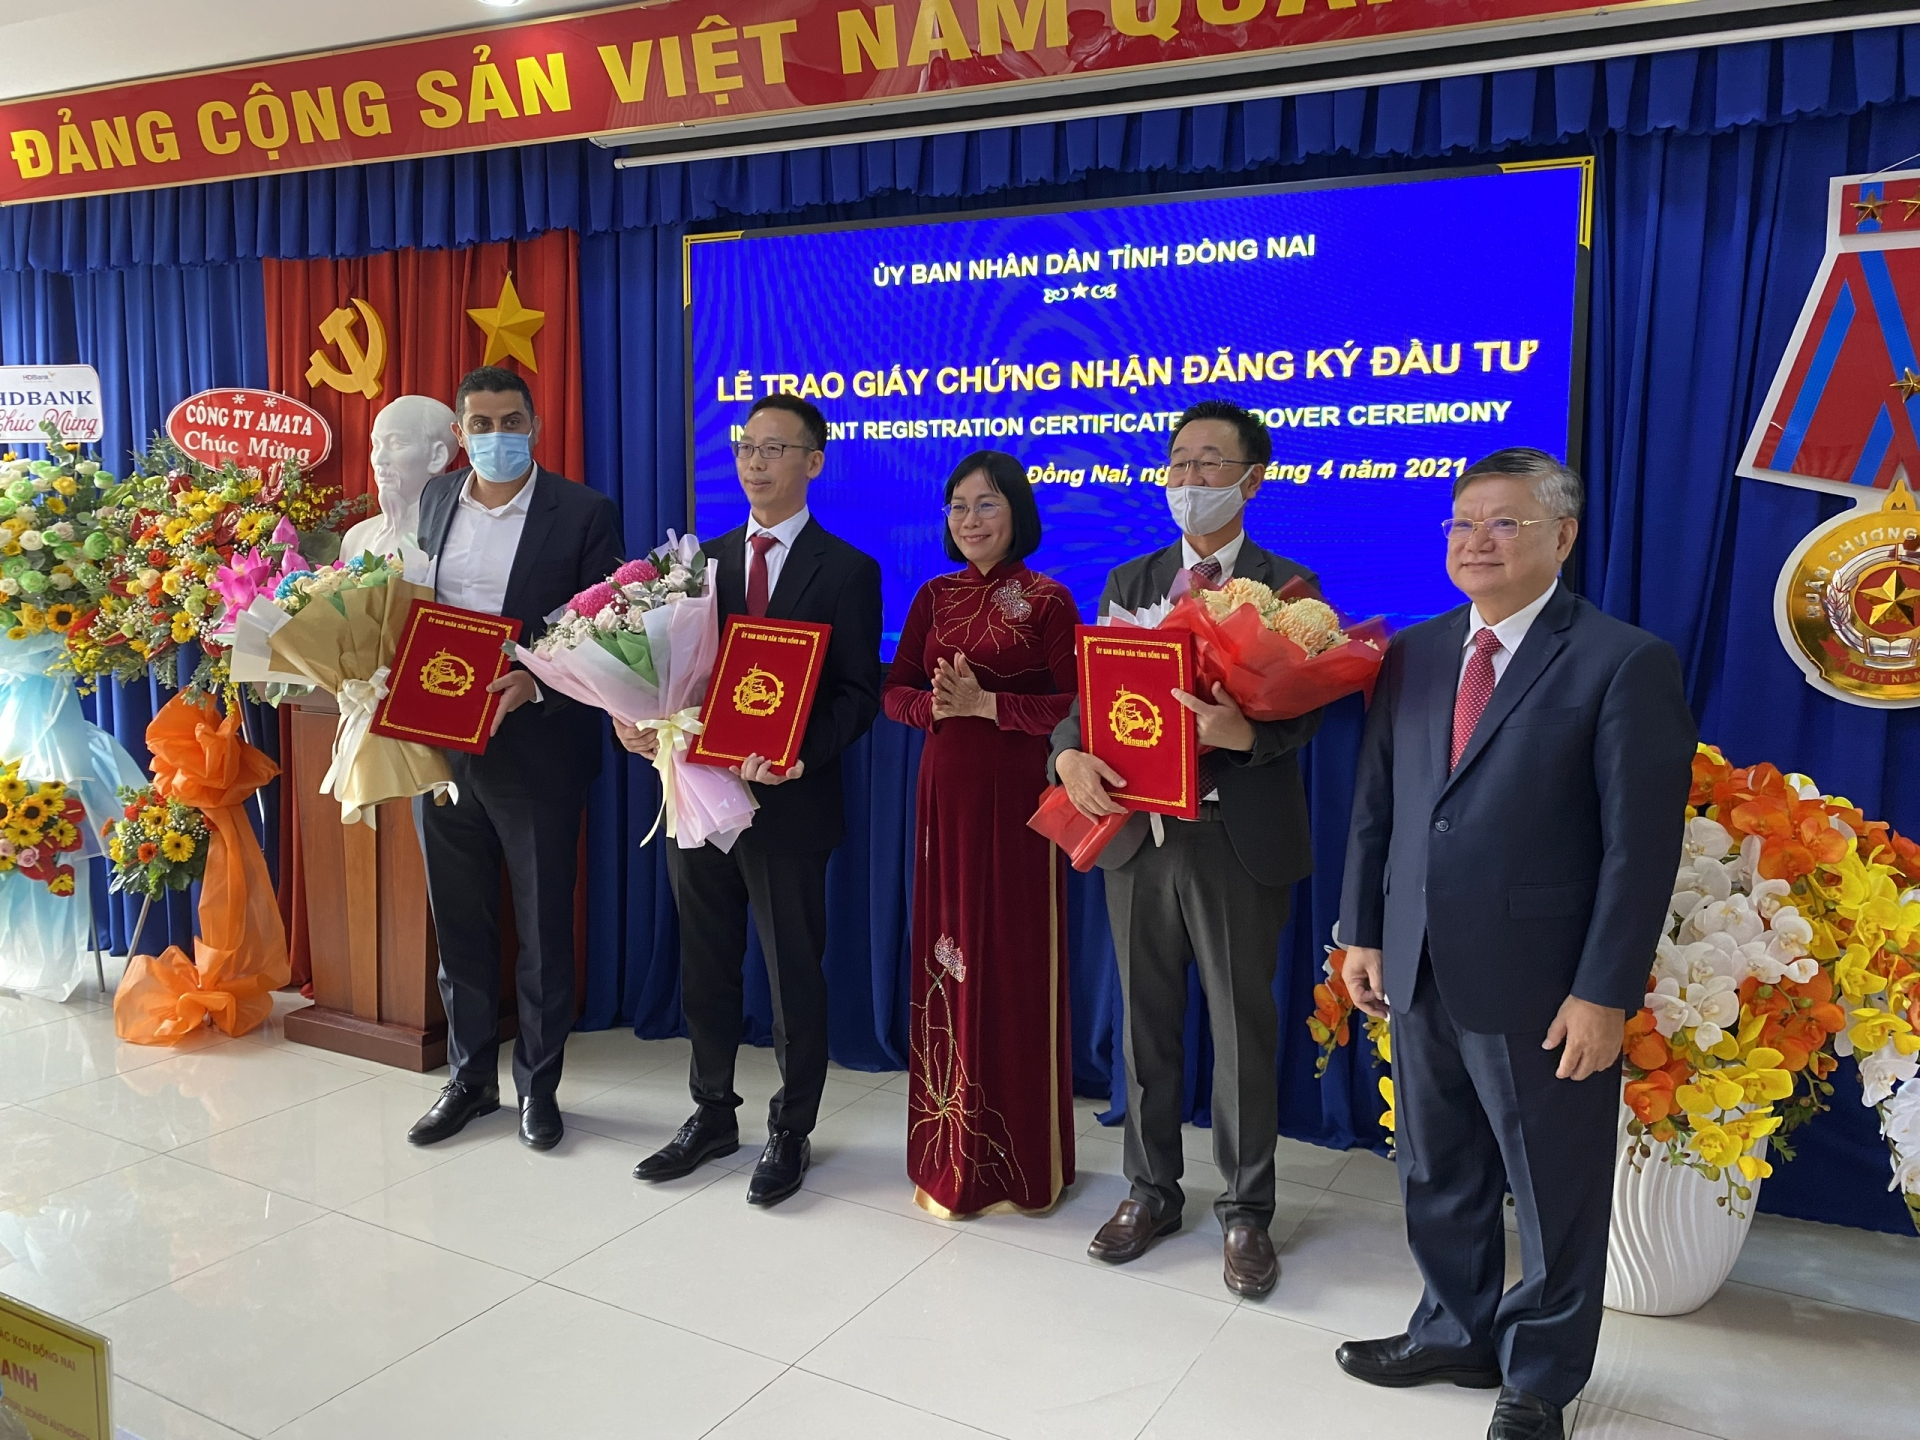 Nestlé, Formosa, and four others expand investment in Dong Nai